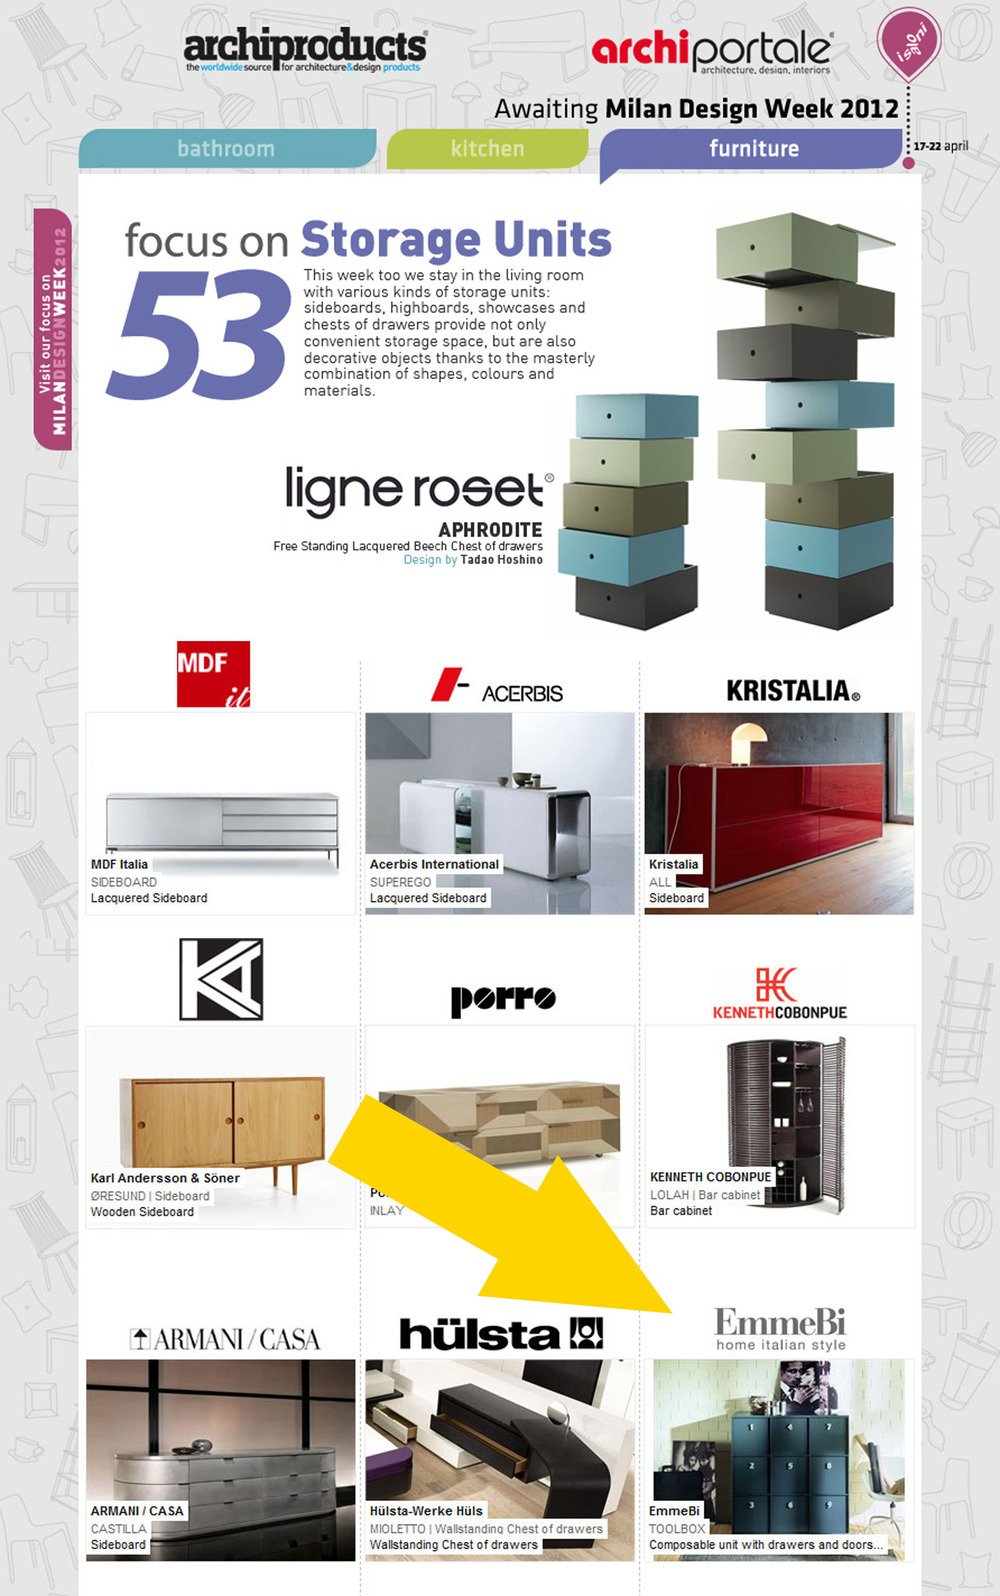 Newsletter_archiproducts.com 29 Marzo 2012.jpg